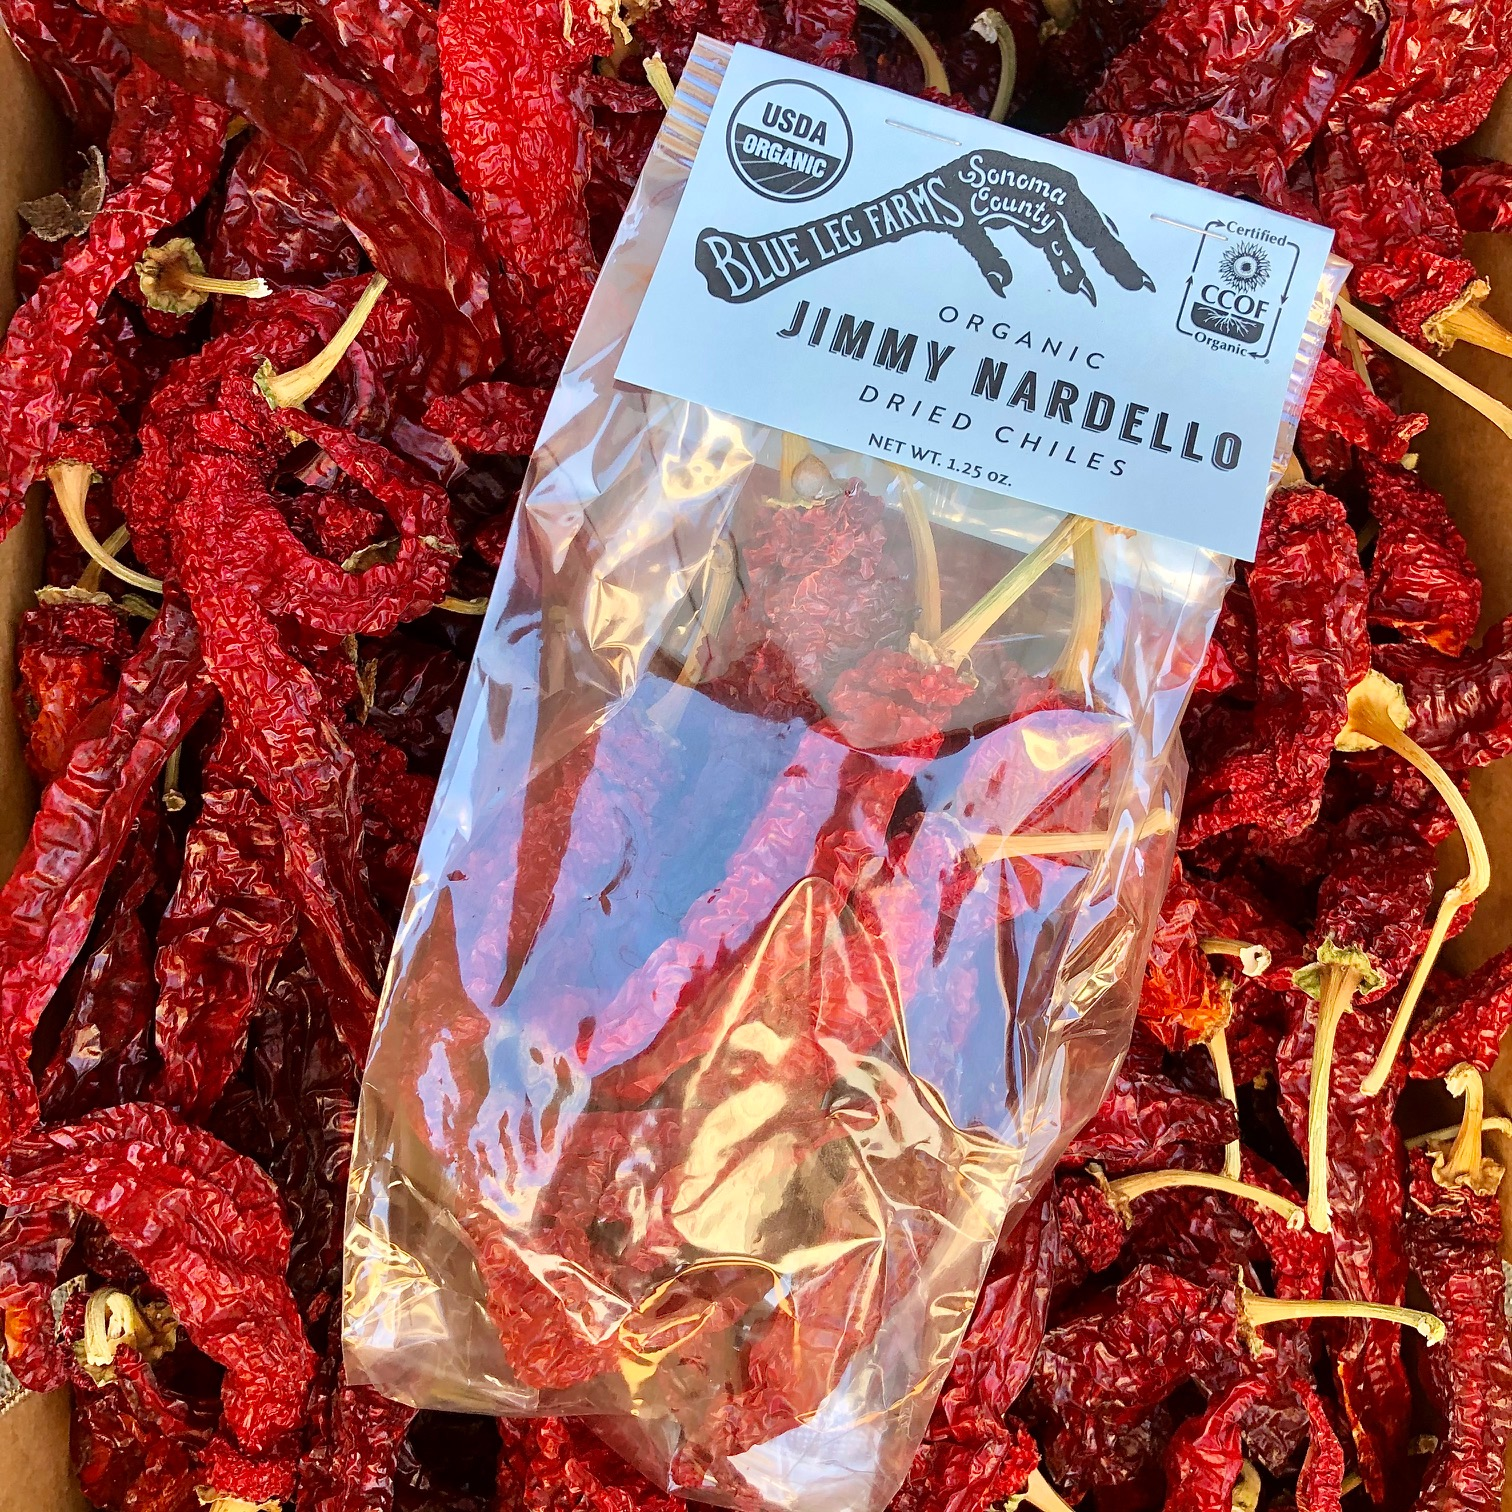 Dried Jimmy Nardello Chilies